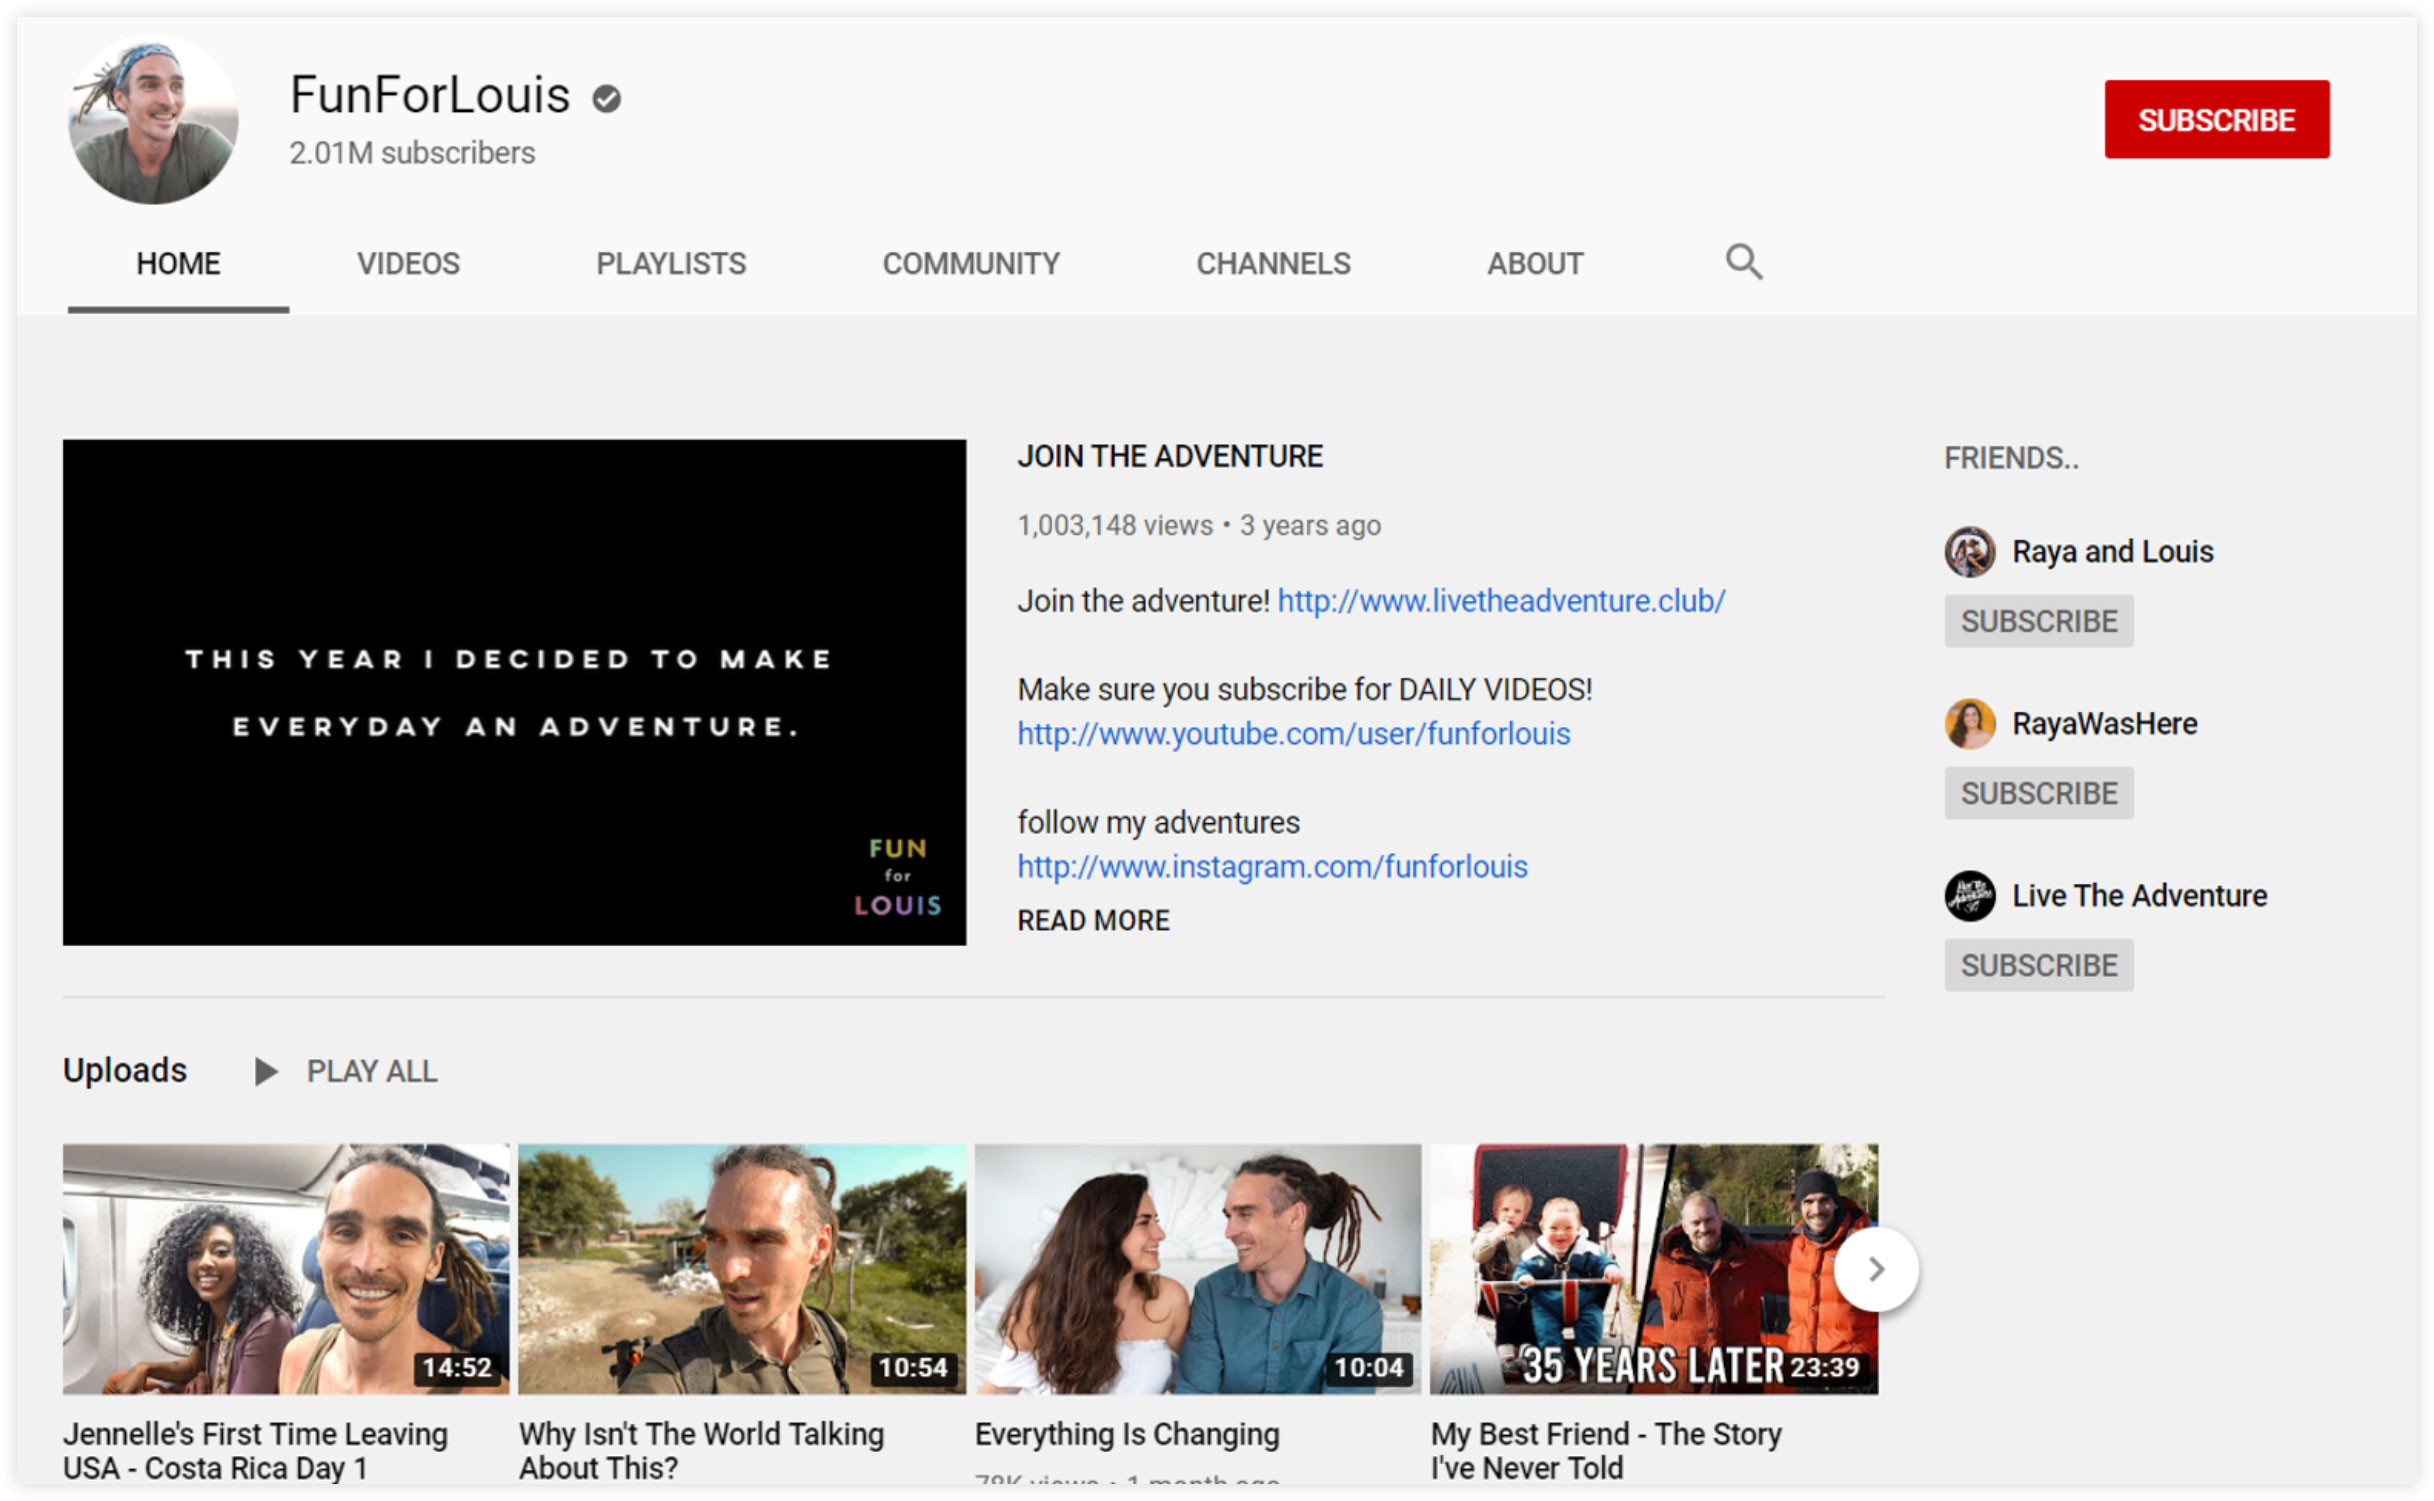 FunForLouis YouTube Channel